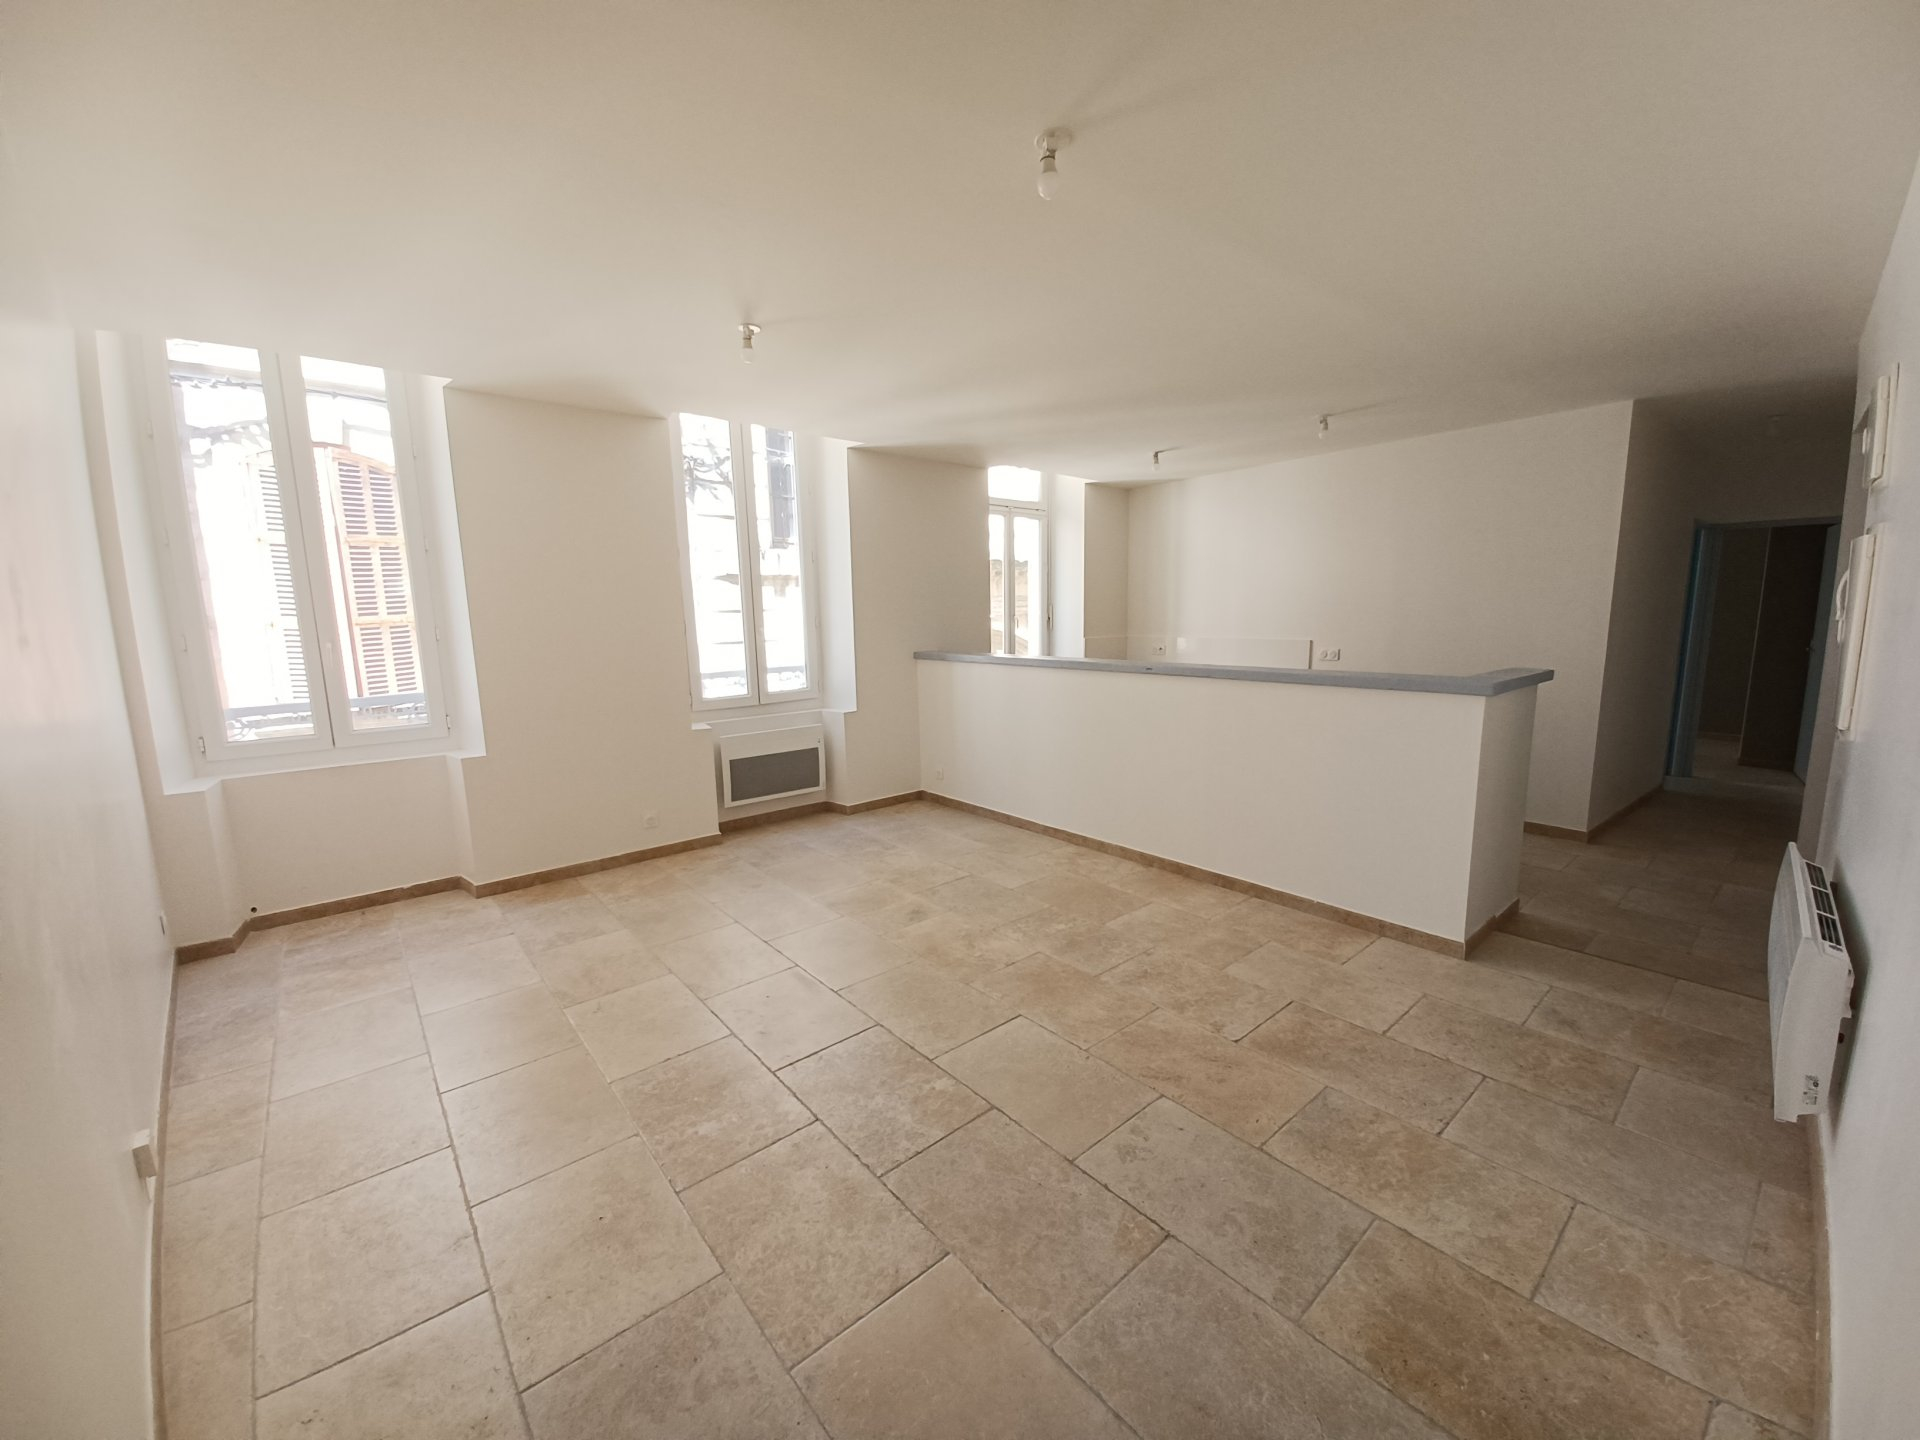 Location Appartement TARASCON Mandat : 1004